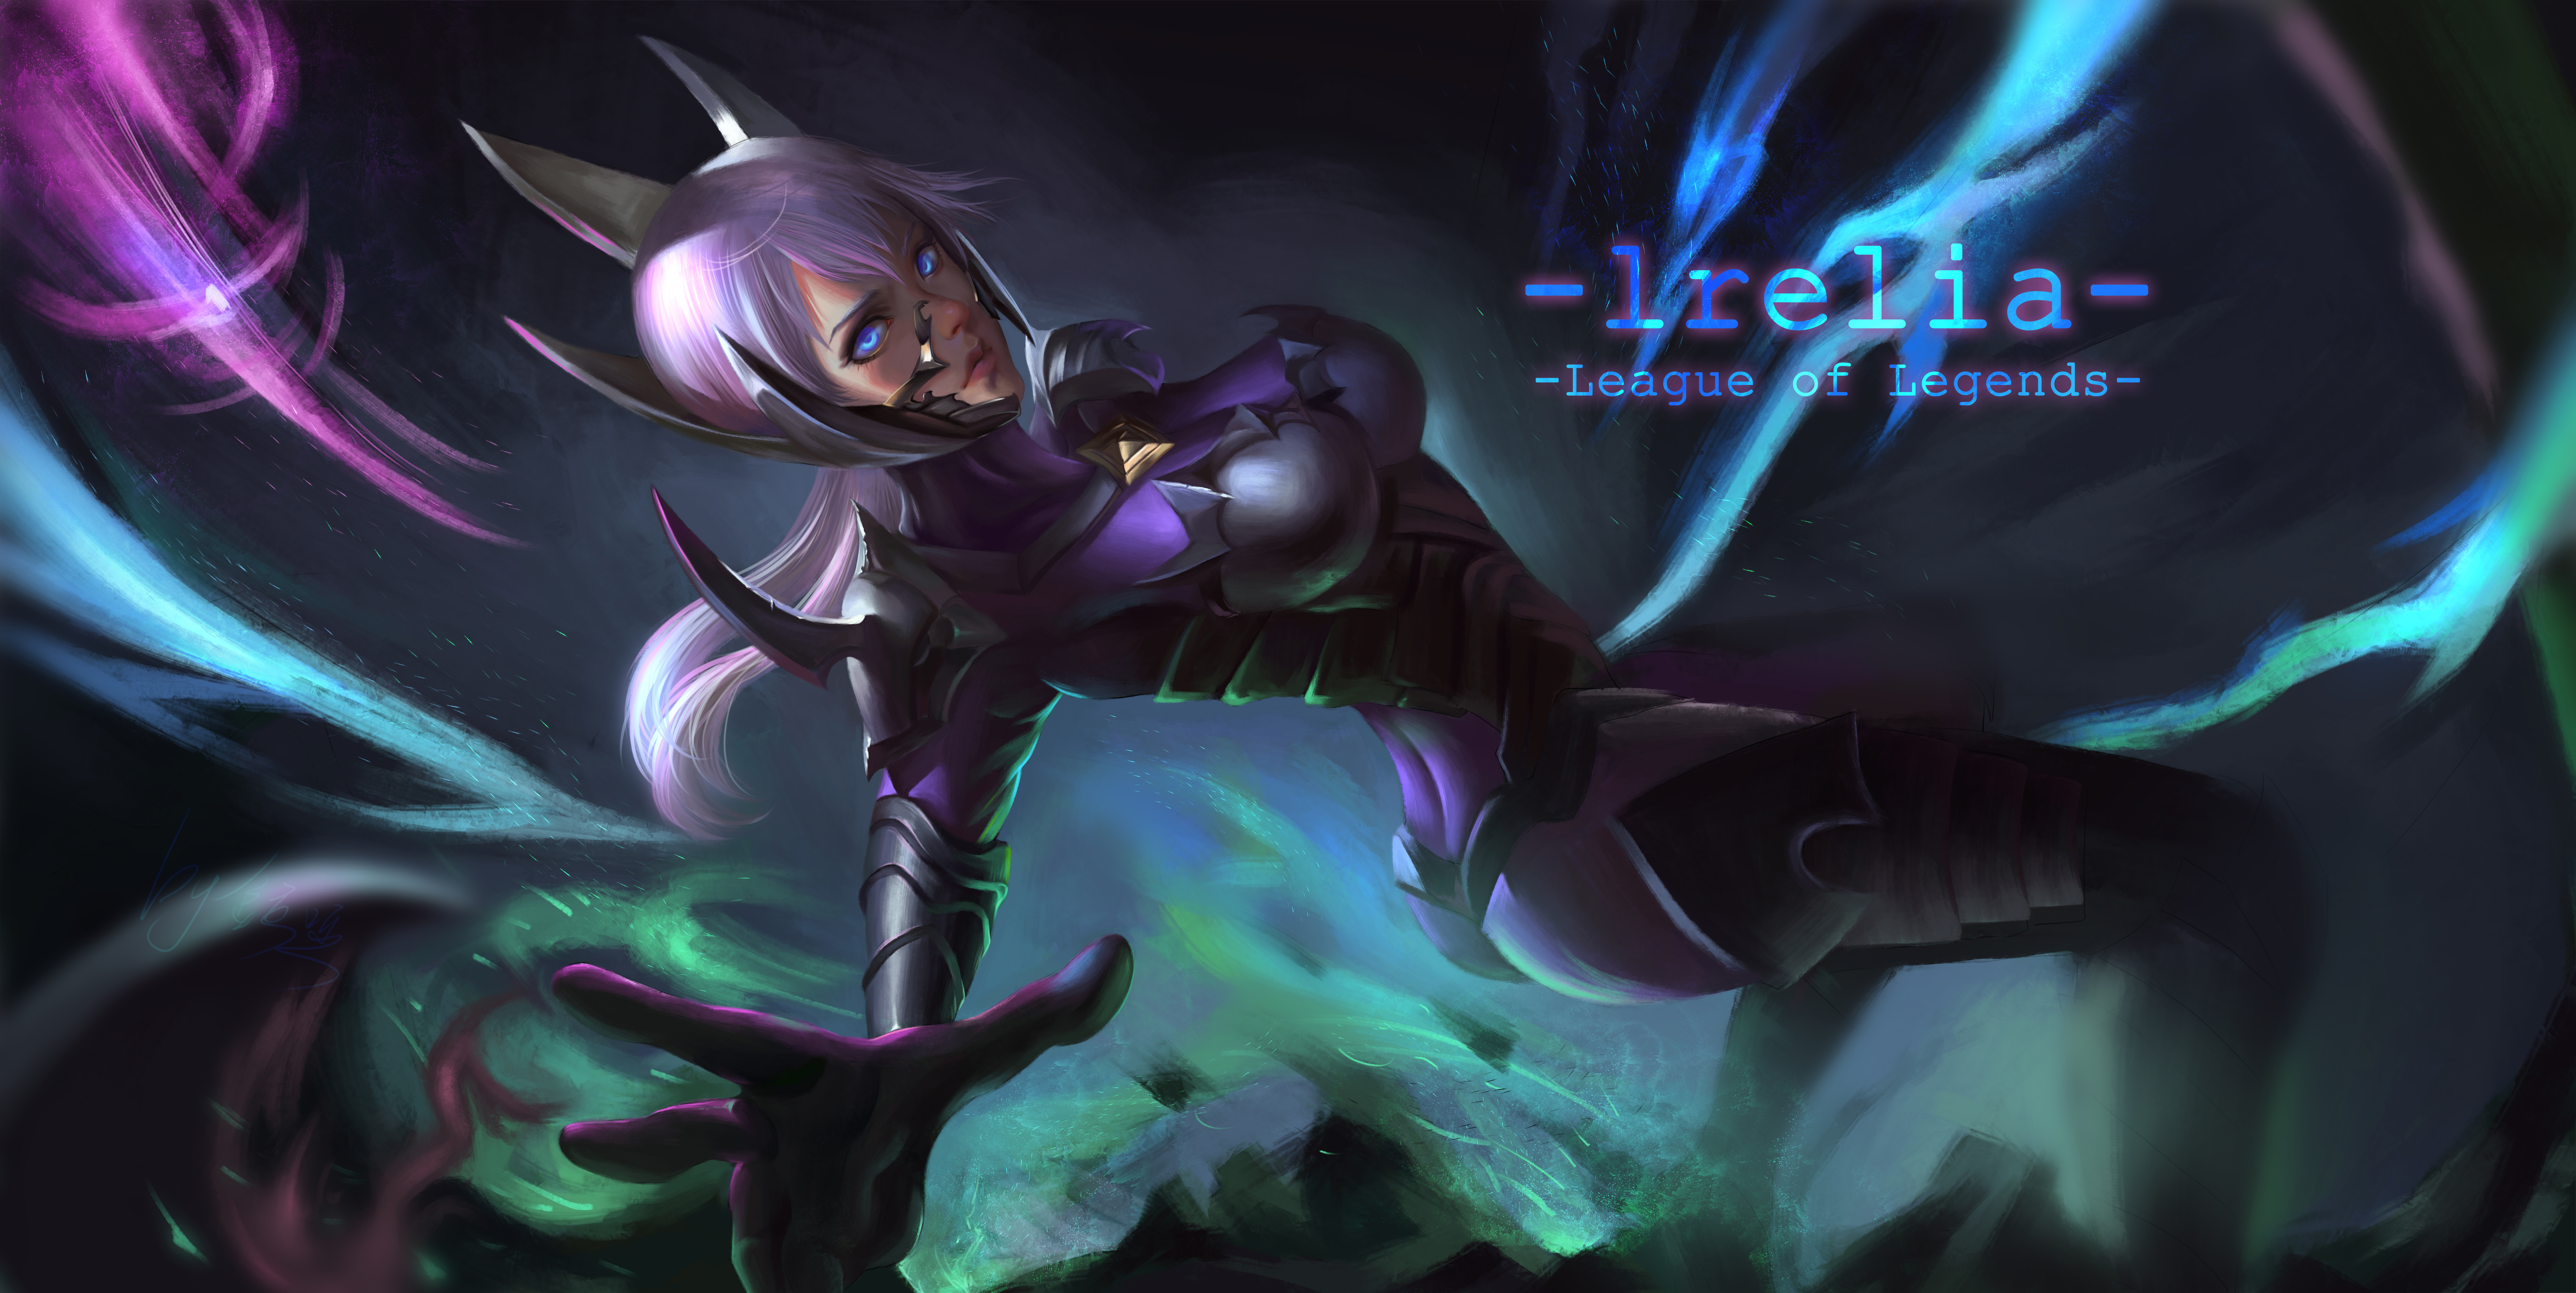 Nightblade Irelia Wallpaper Hd 10003x5020 Wallpaper Teahub Io